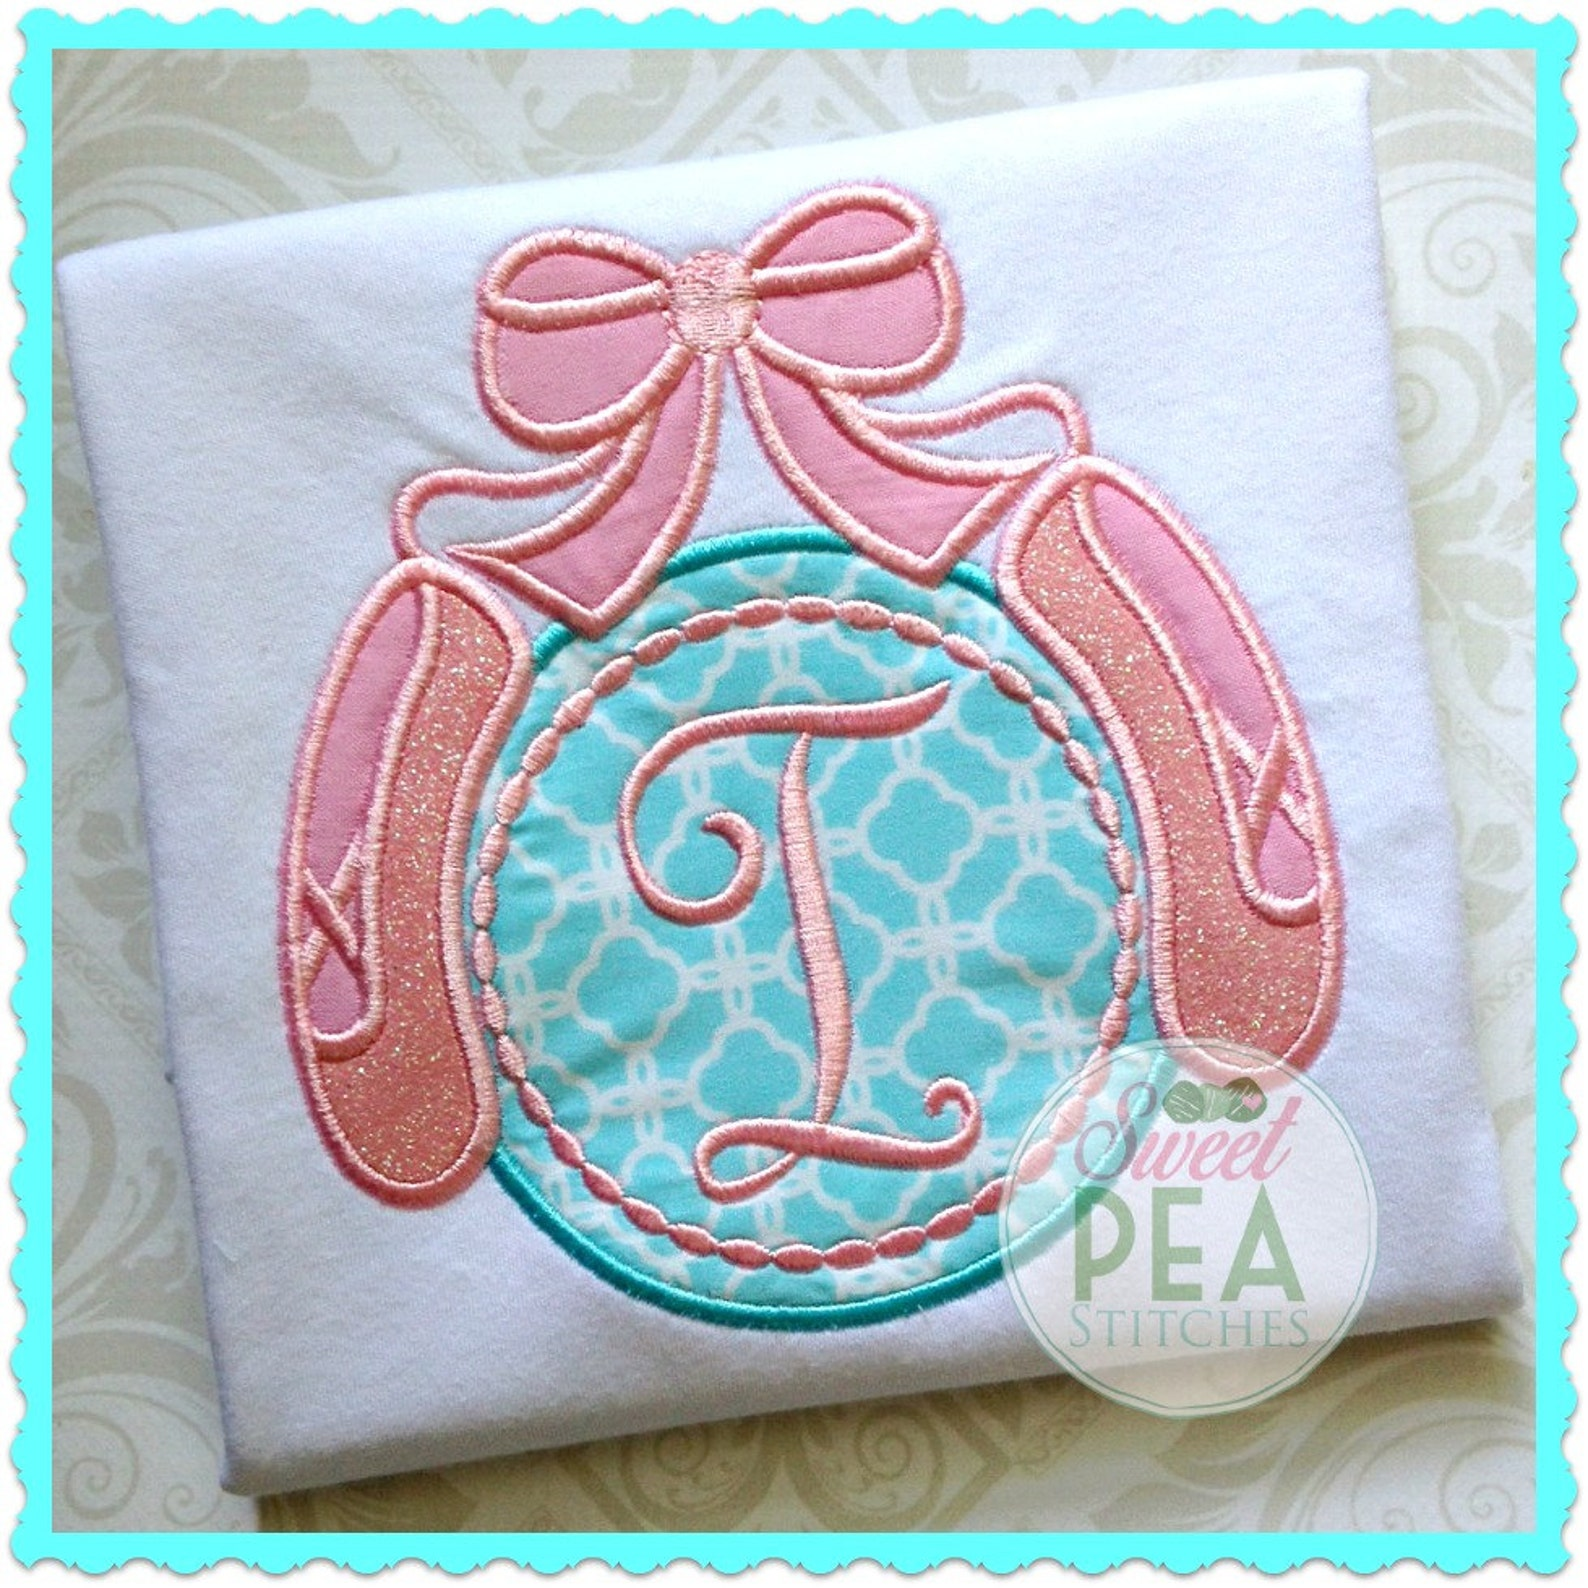 monogram ballet shirt - ballerina shirt - embroidered shirt - dance - girls - ballet shoes shirt - personalized applique shirt